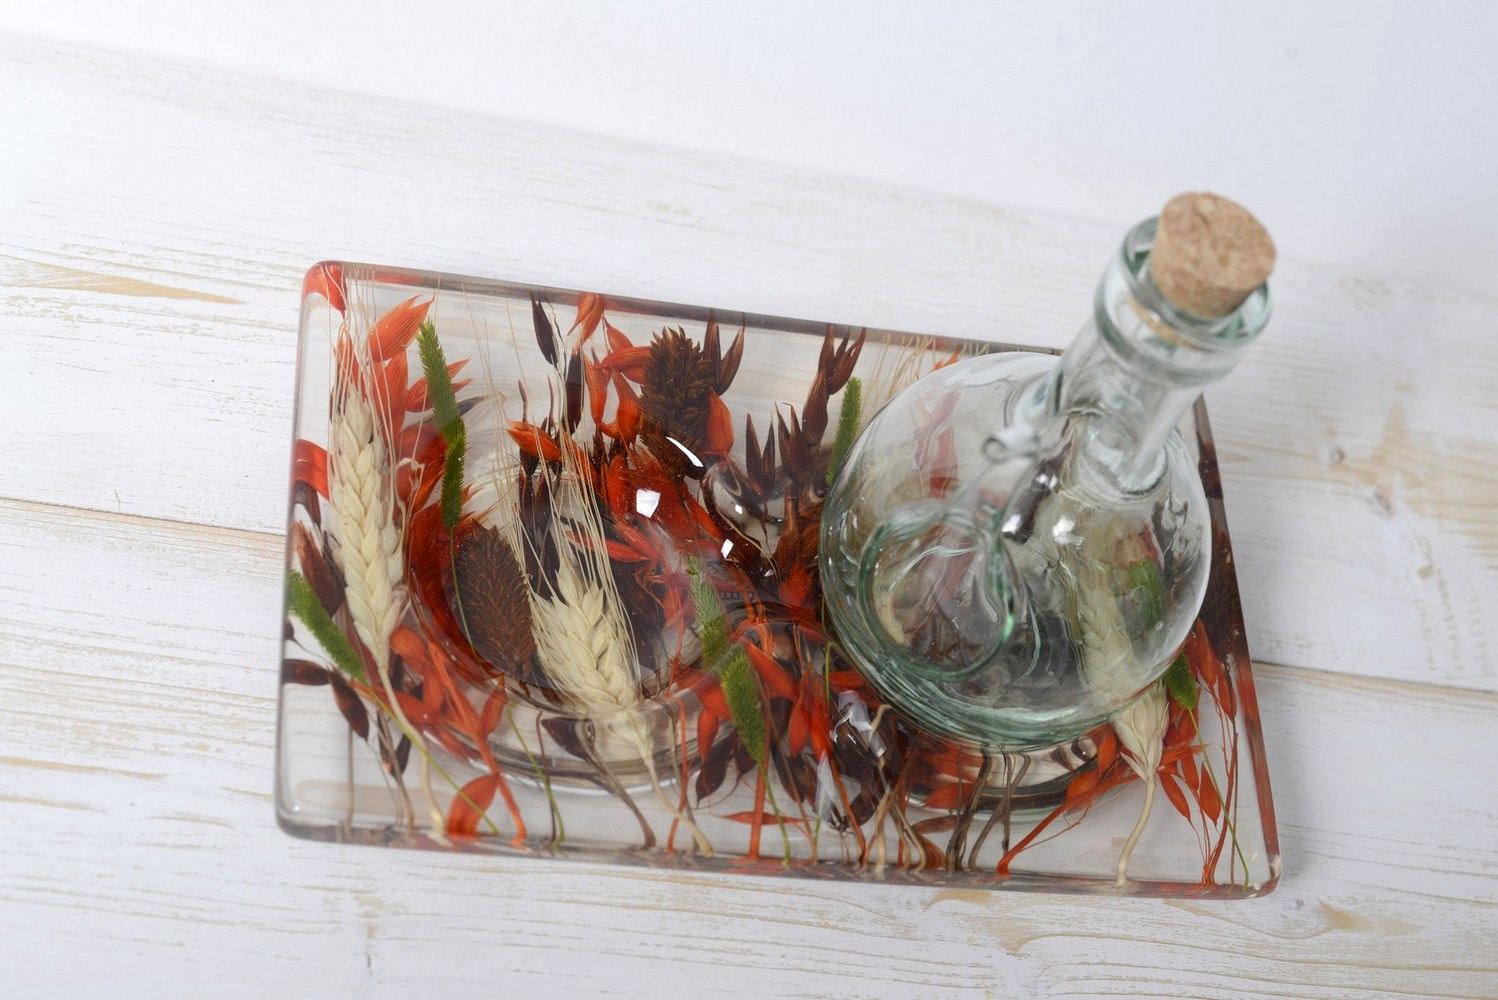 Oil/Vinegar Set Autumn Collection cm 19x12 h15